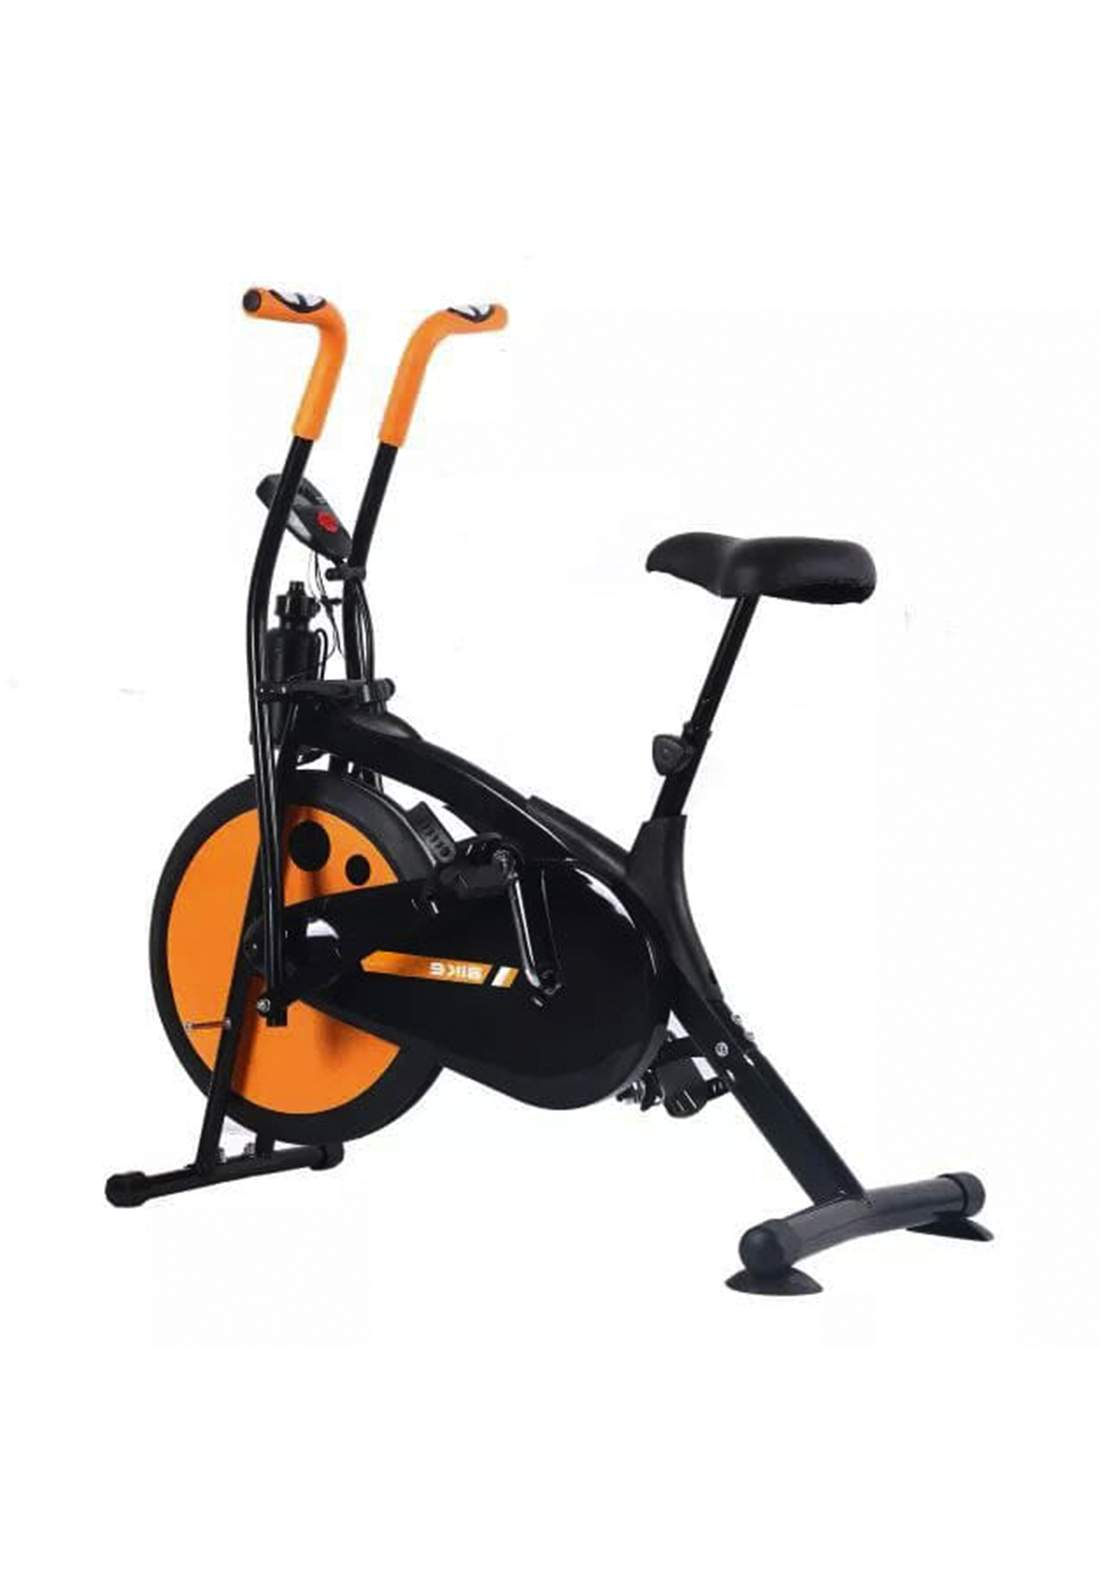 Aerobic Bike For Exercise بايسكل هوائي